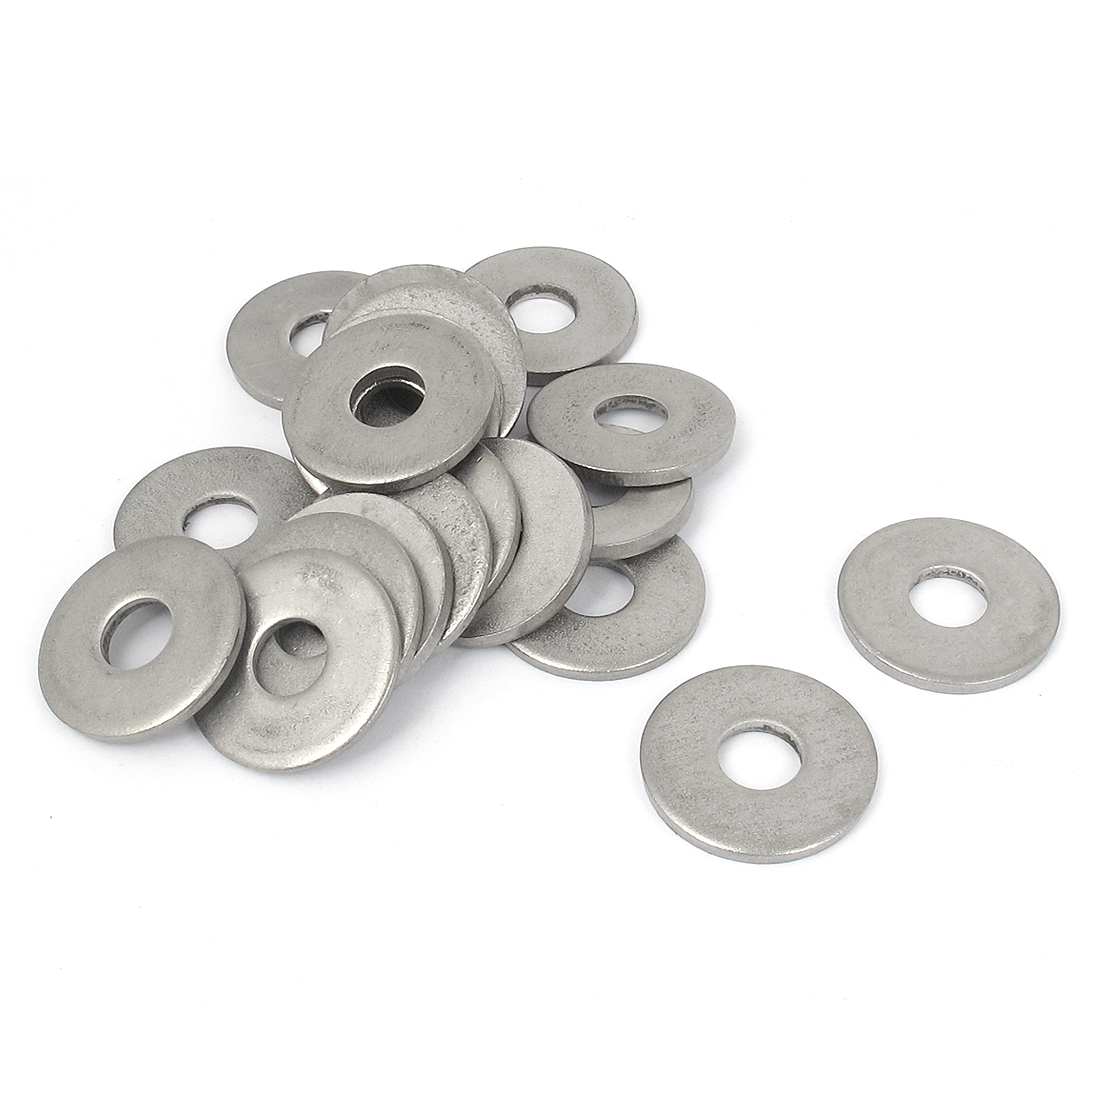 20Pcs M10x30mmx3mm Stainless Steel Metric Round Flat Washer for Bolt Screw